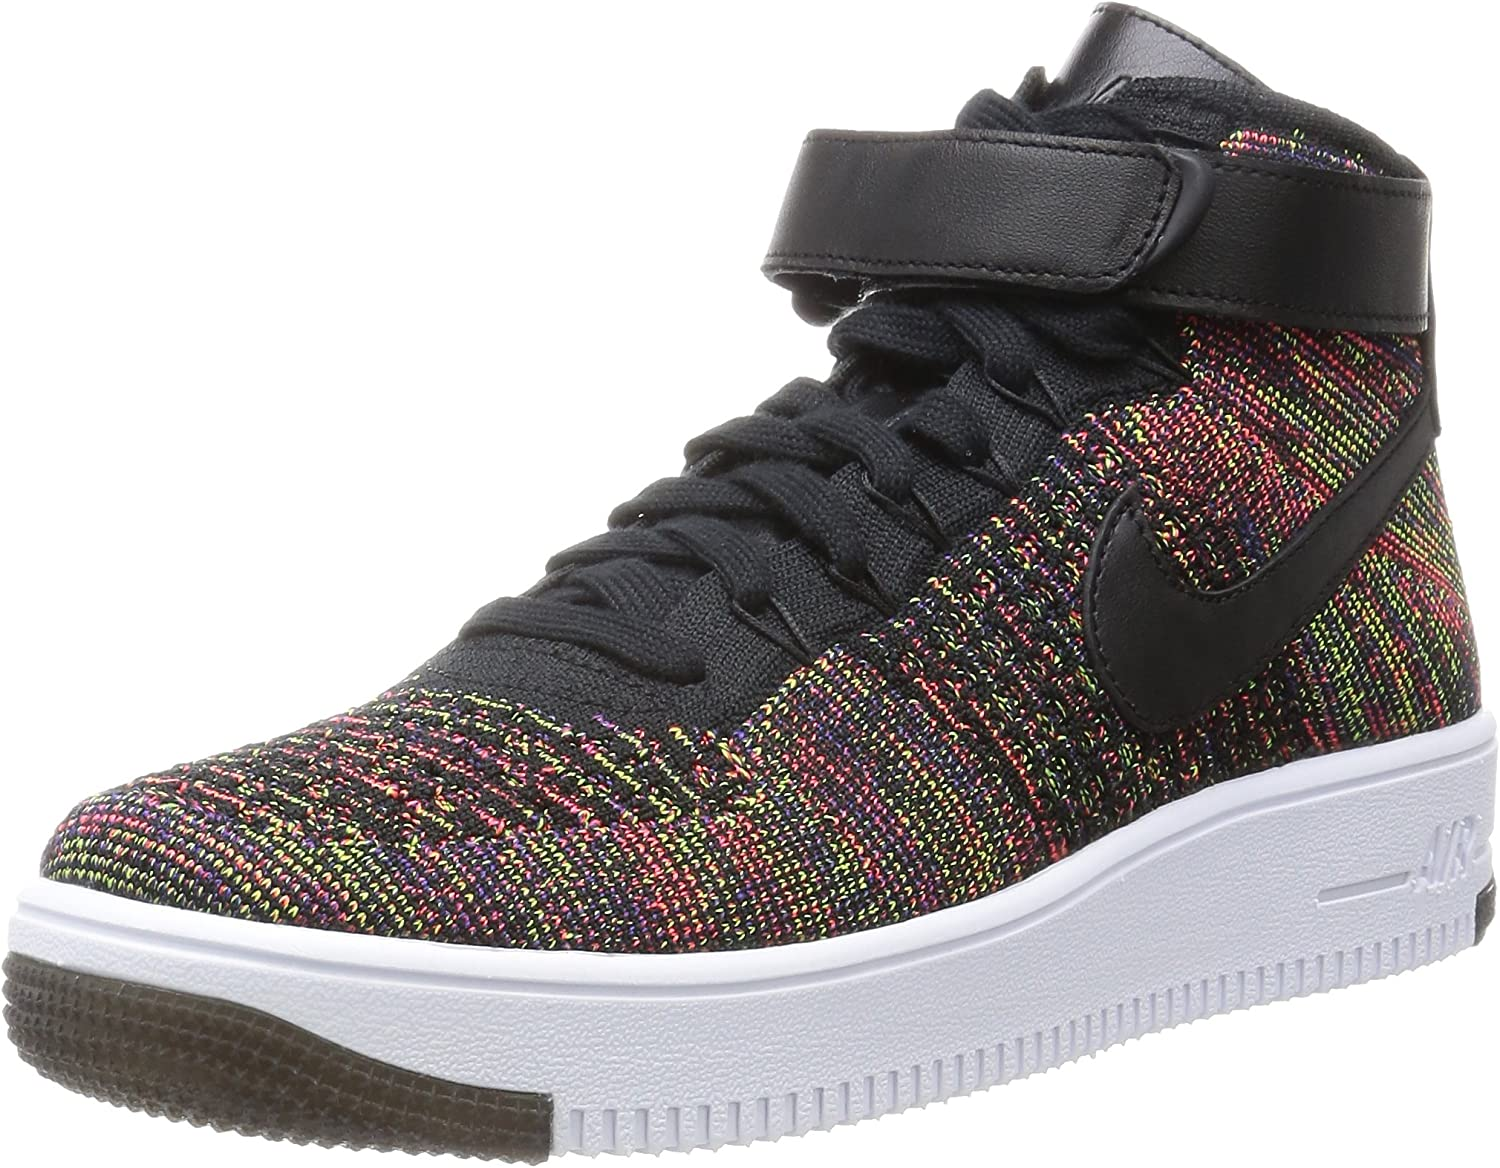 adolescentes Unirse en progreso  Amazon.com | Nike Men's AF1 Ultra Flyknit Mid, Black/Brght Crimson-Court  Purple-Violet, 10 M US | Basketball